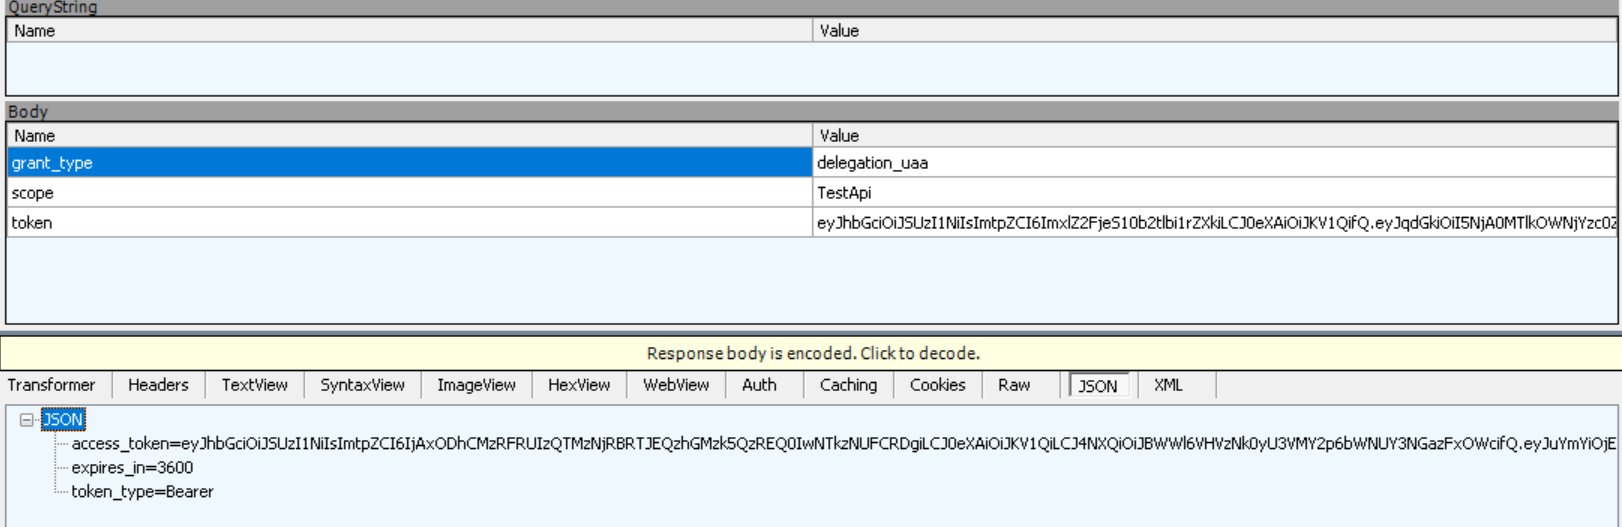 custom extension grant seems to work even if clientid clientsecret